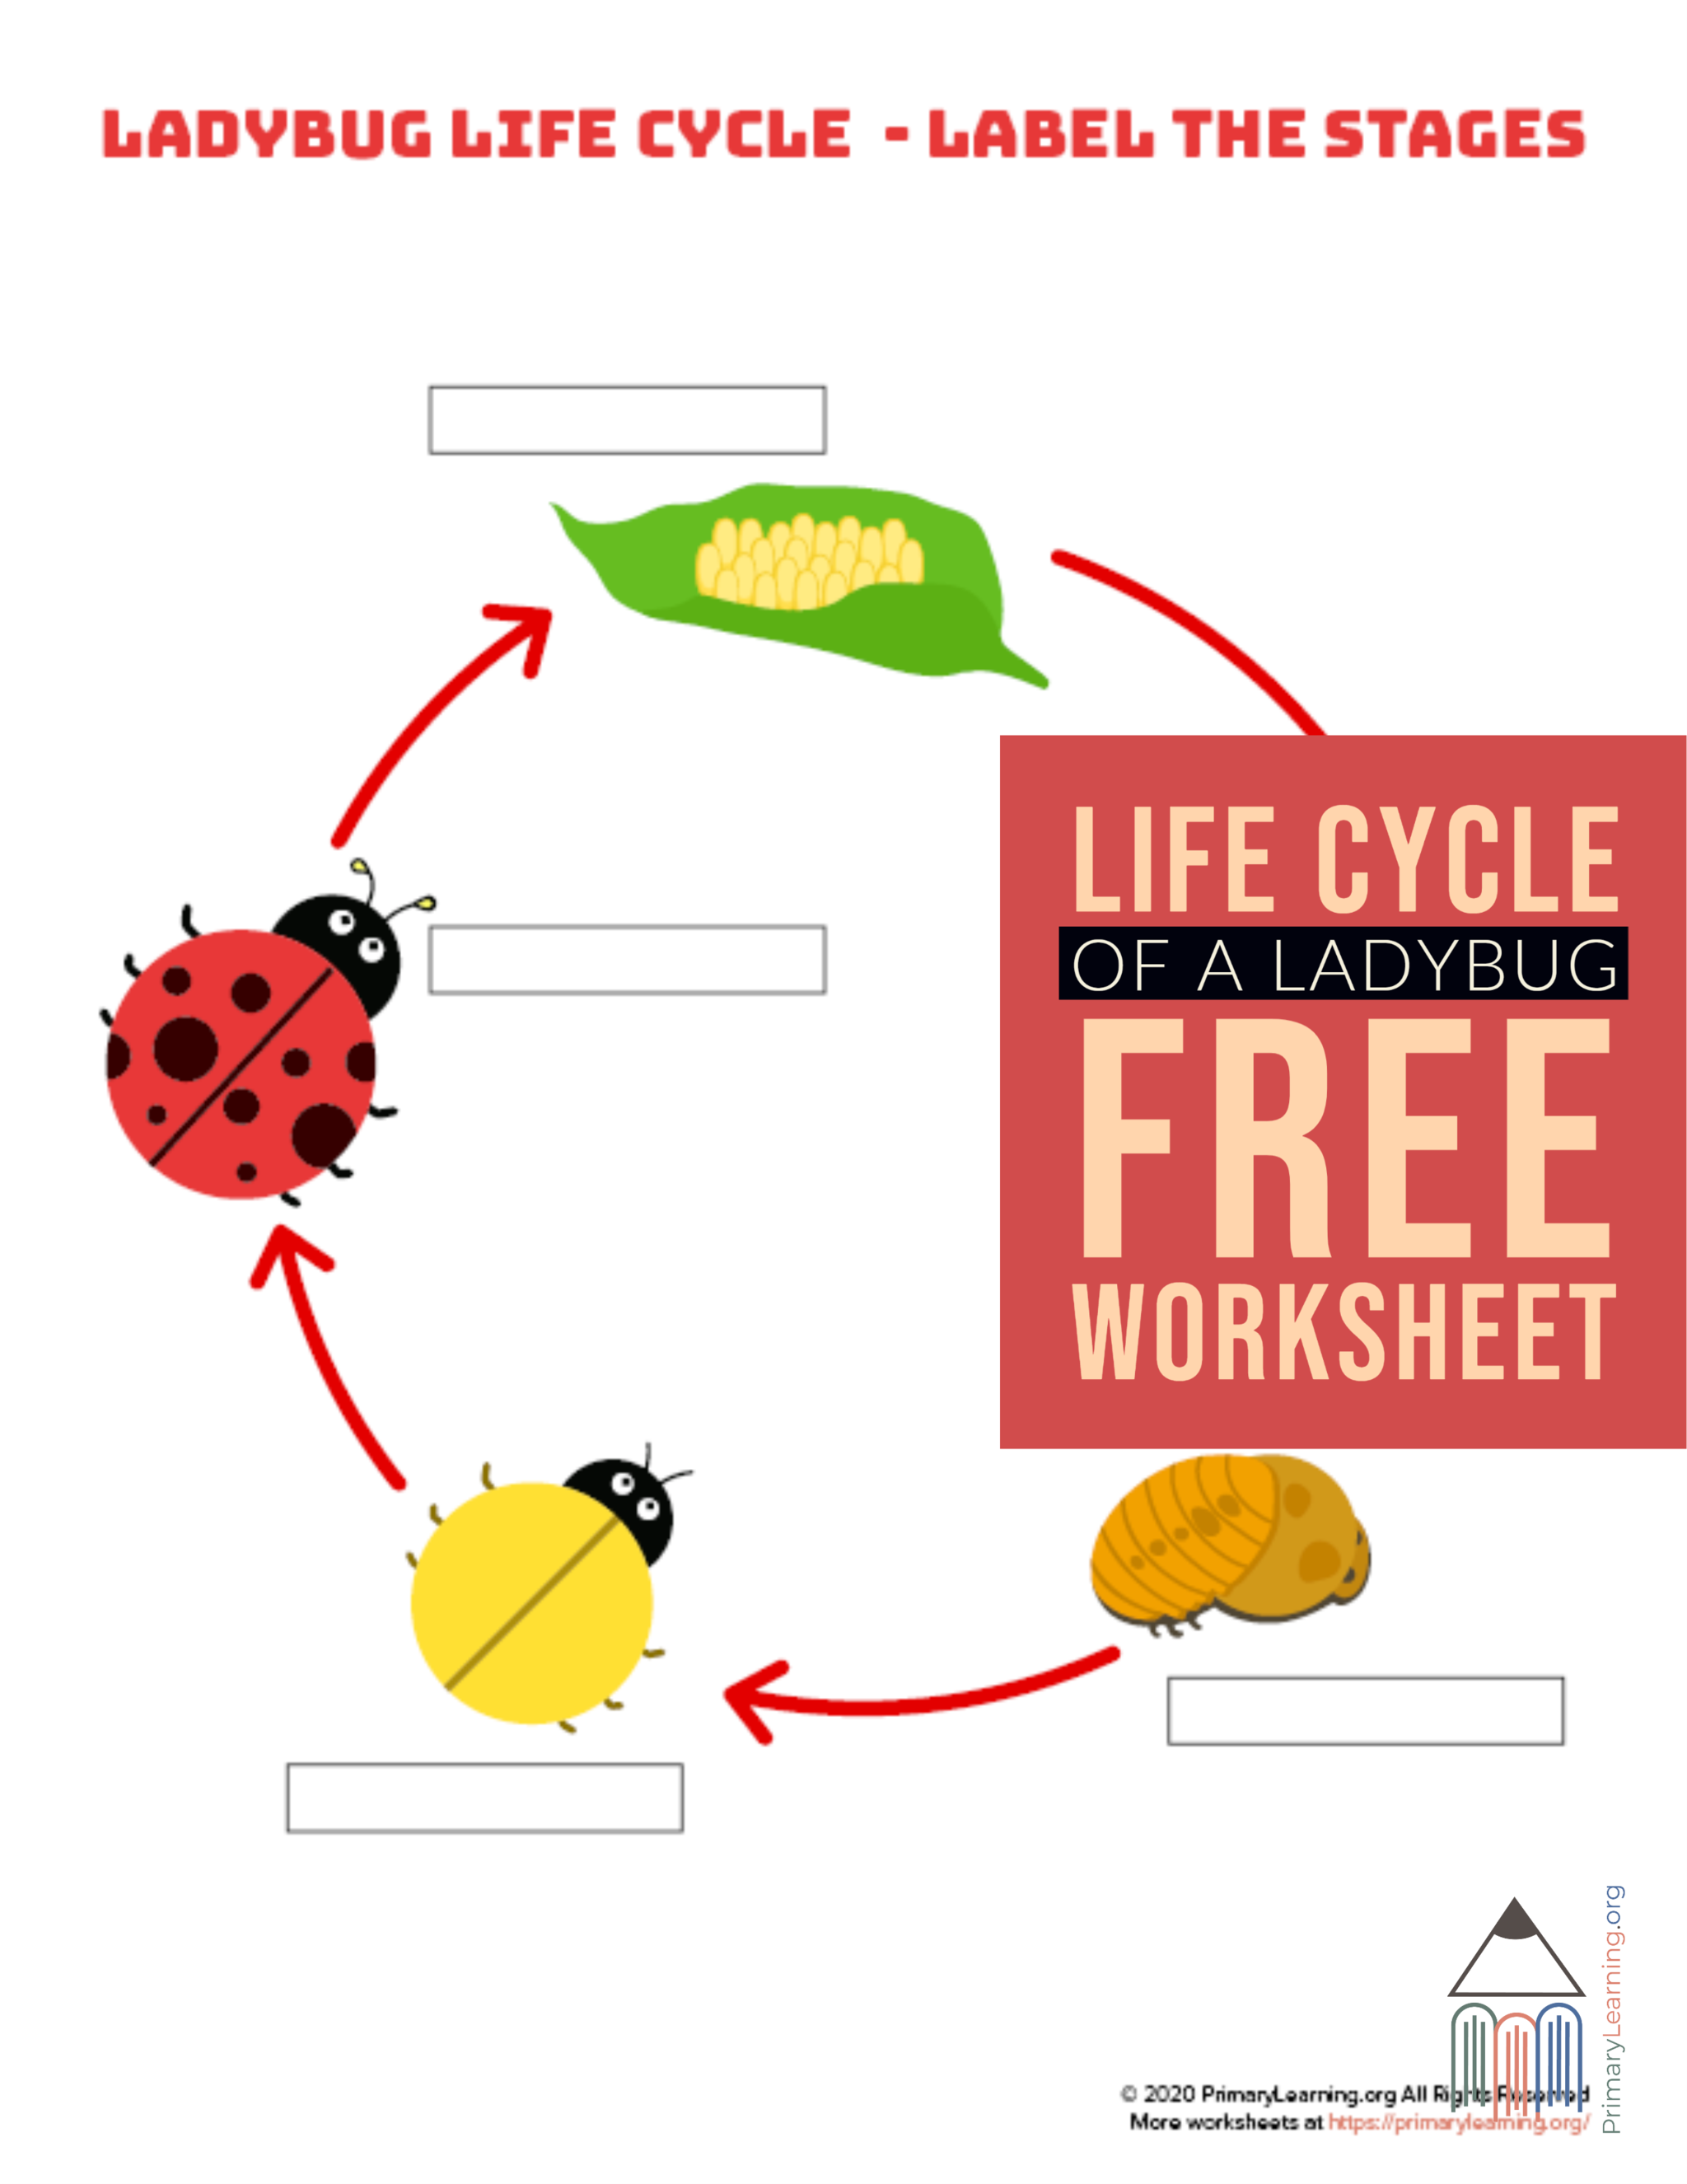 Students Use This Worksheet To Label The Stage Of Ladybug